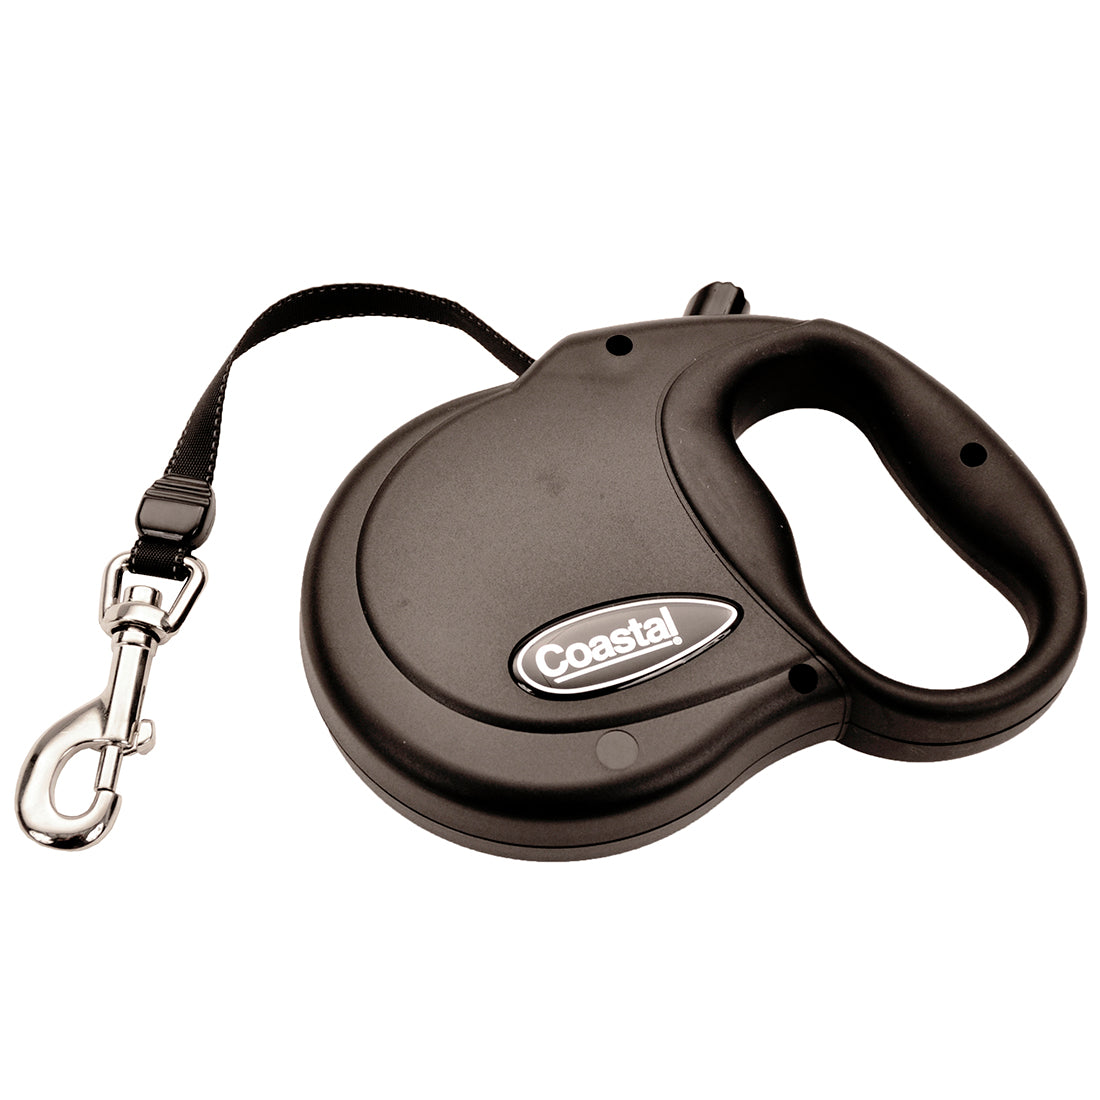 Coastal Power Walker Retractable Lead Medium 16' Black